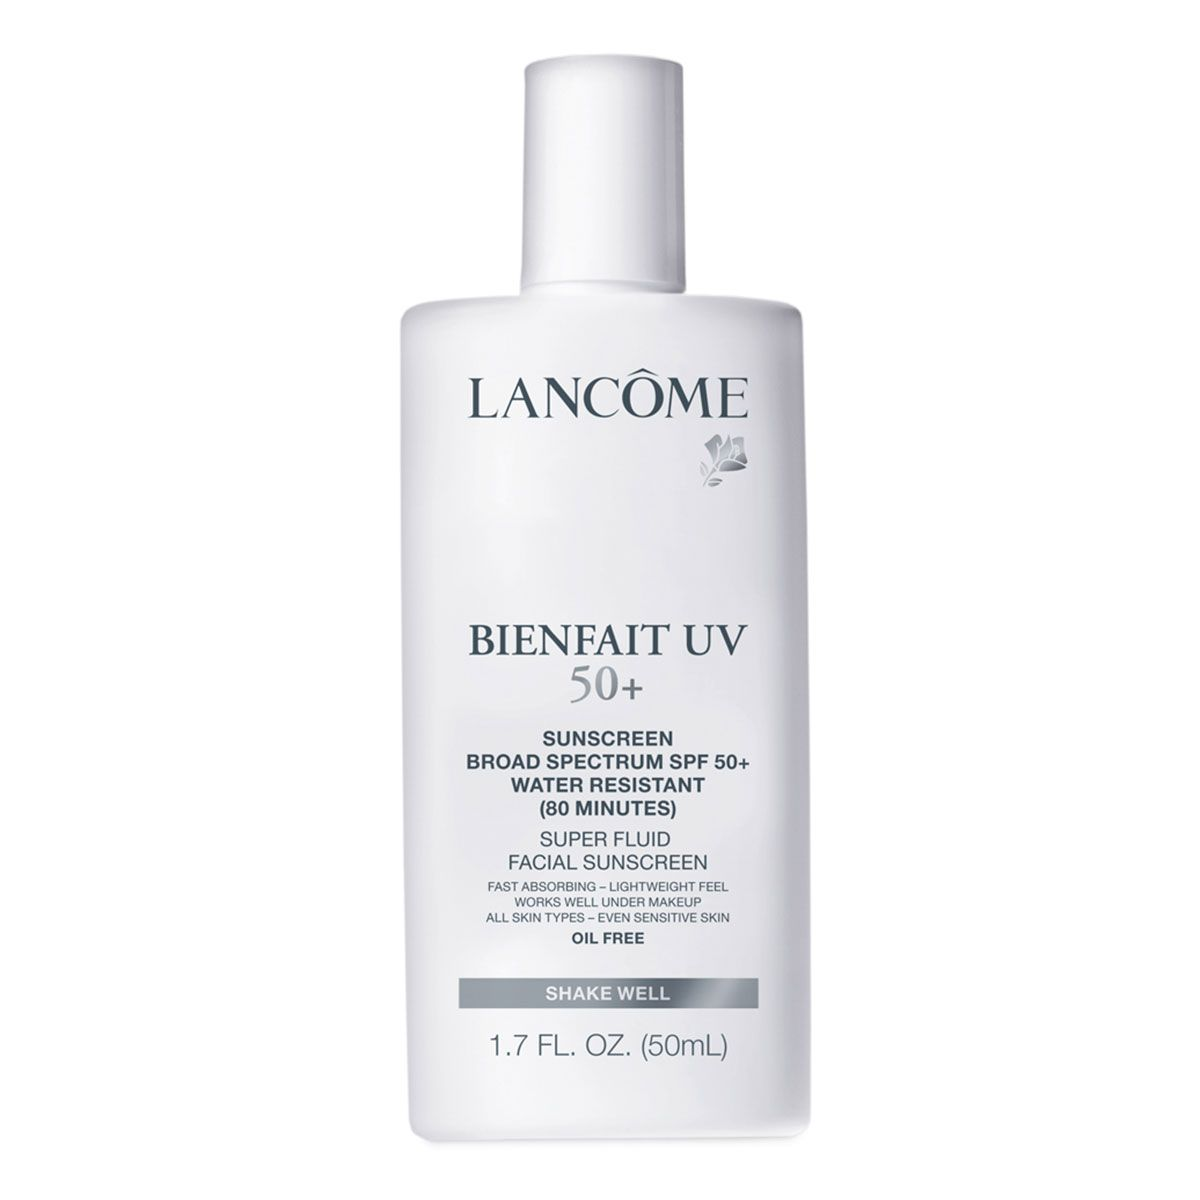 Lancôme BIENFAIT UV SPF 50+ Super Fluid Facial Sunscreen